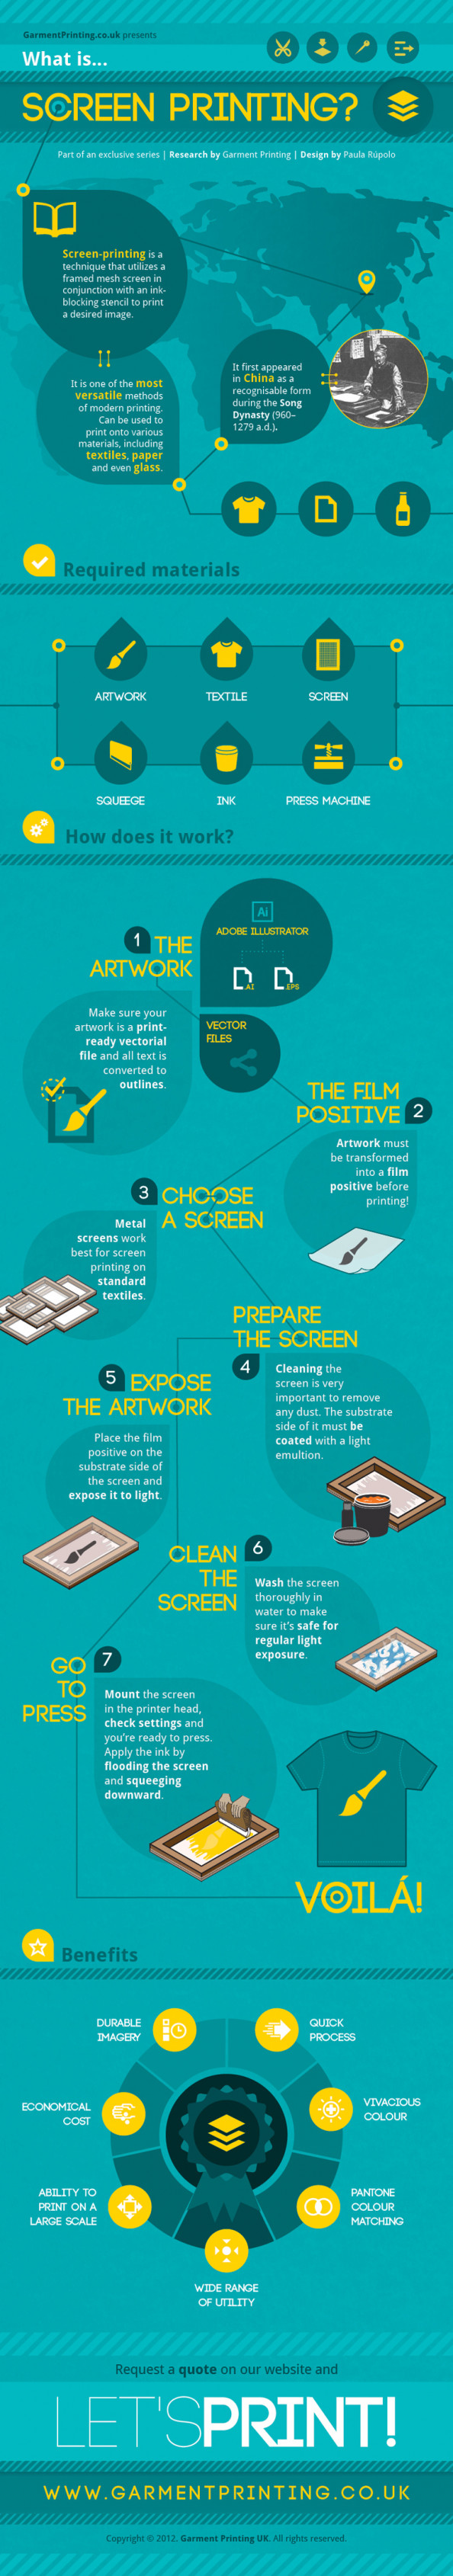 What is Screen Printing? Infographic